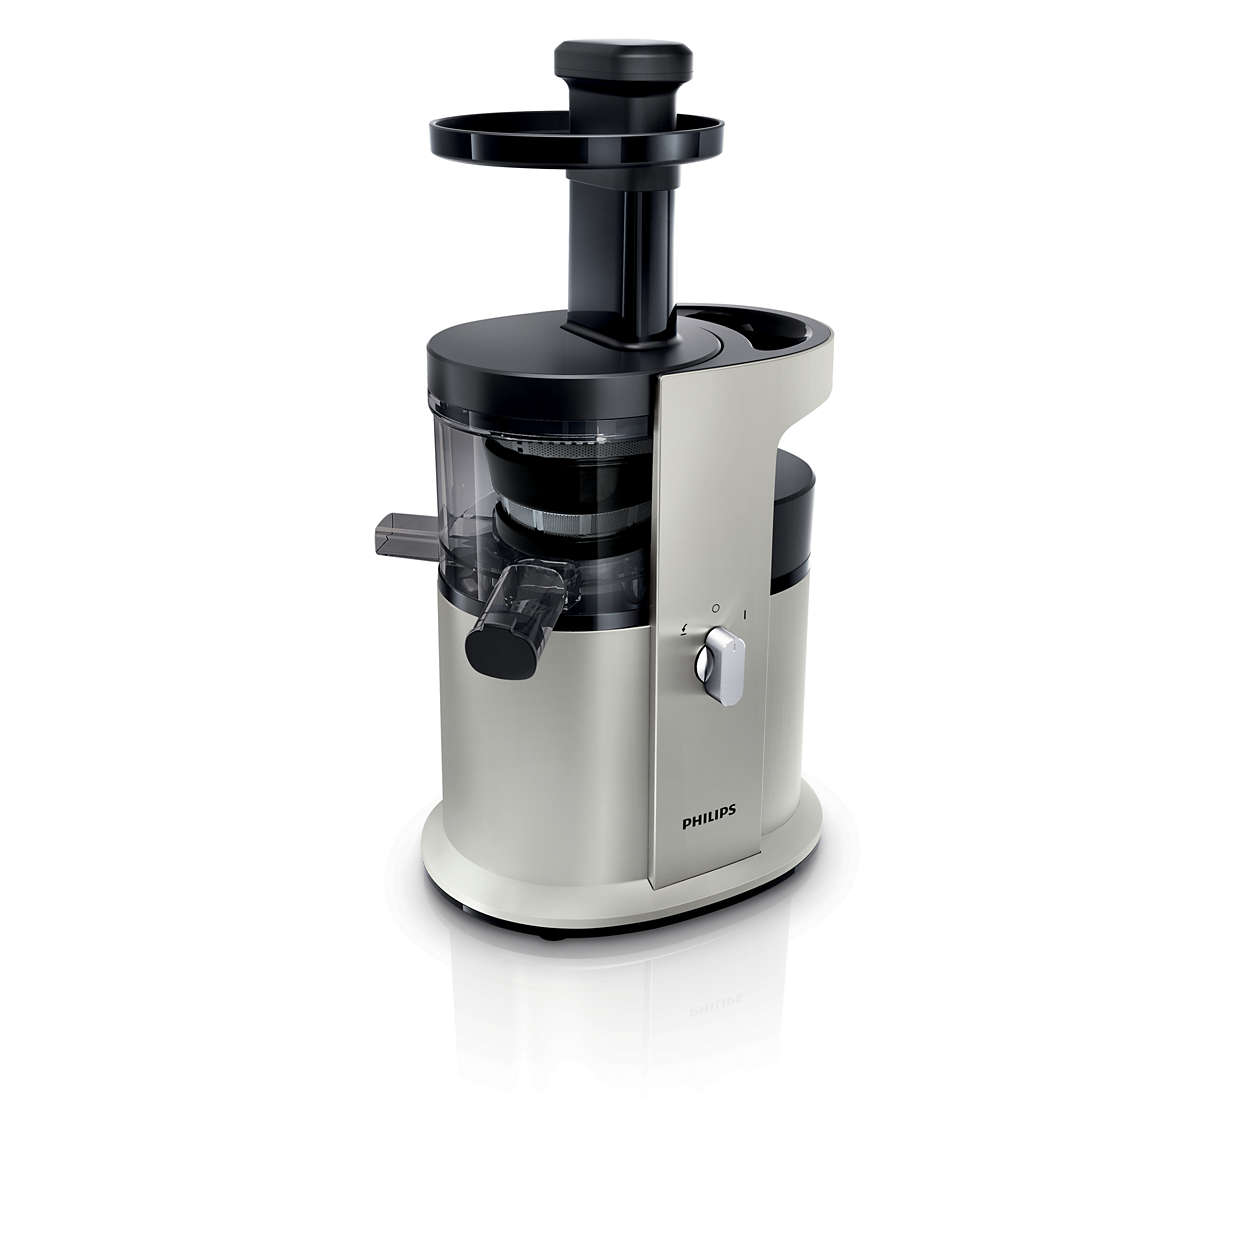 Philips Slow Juicer Hr 1896 : Avance Collection Slow Juicer HR1882/31 Philips